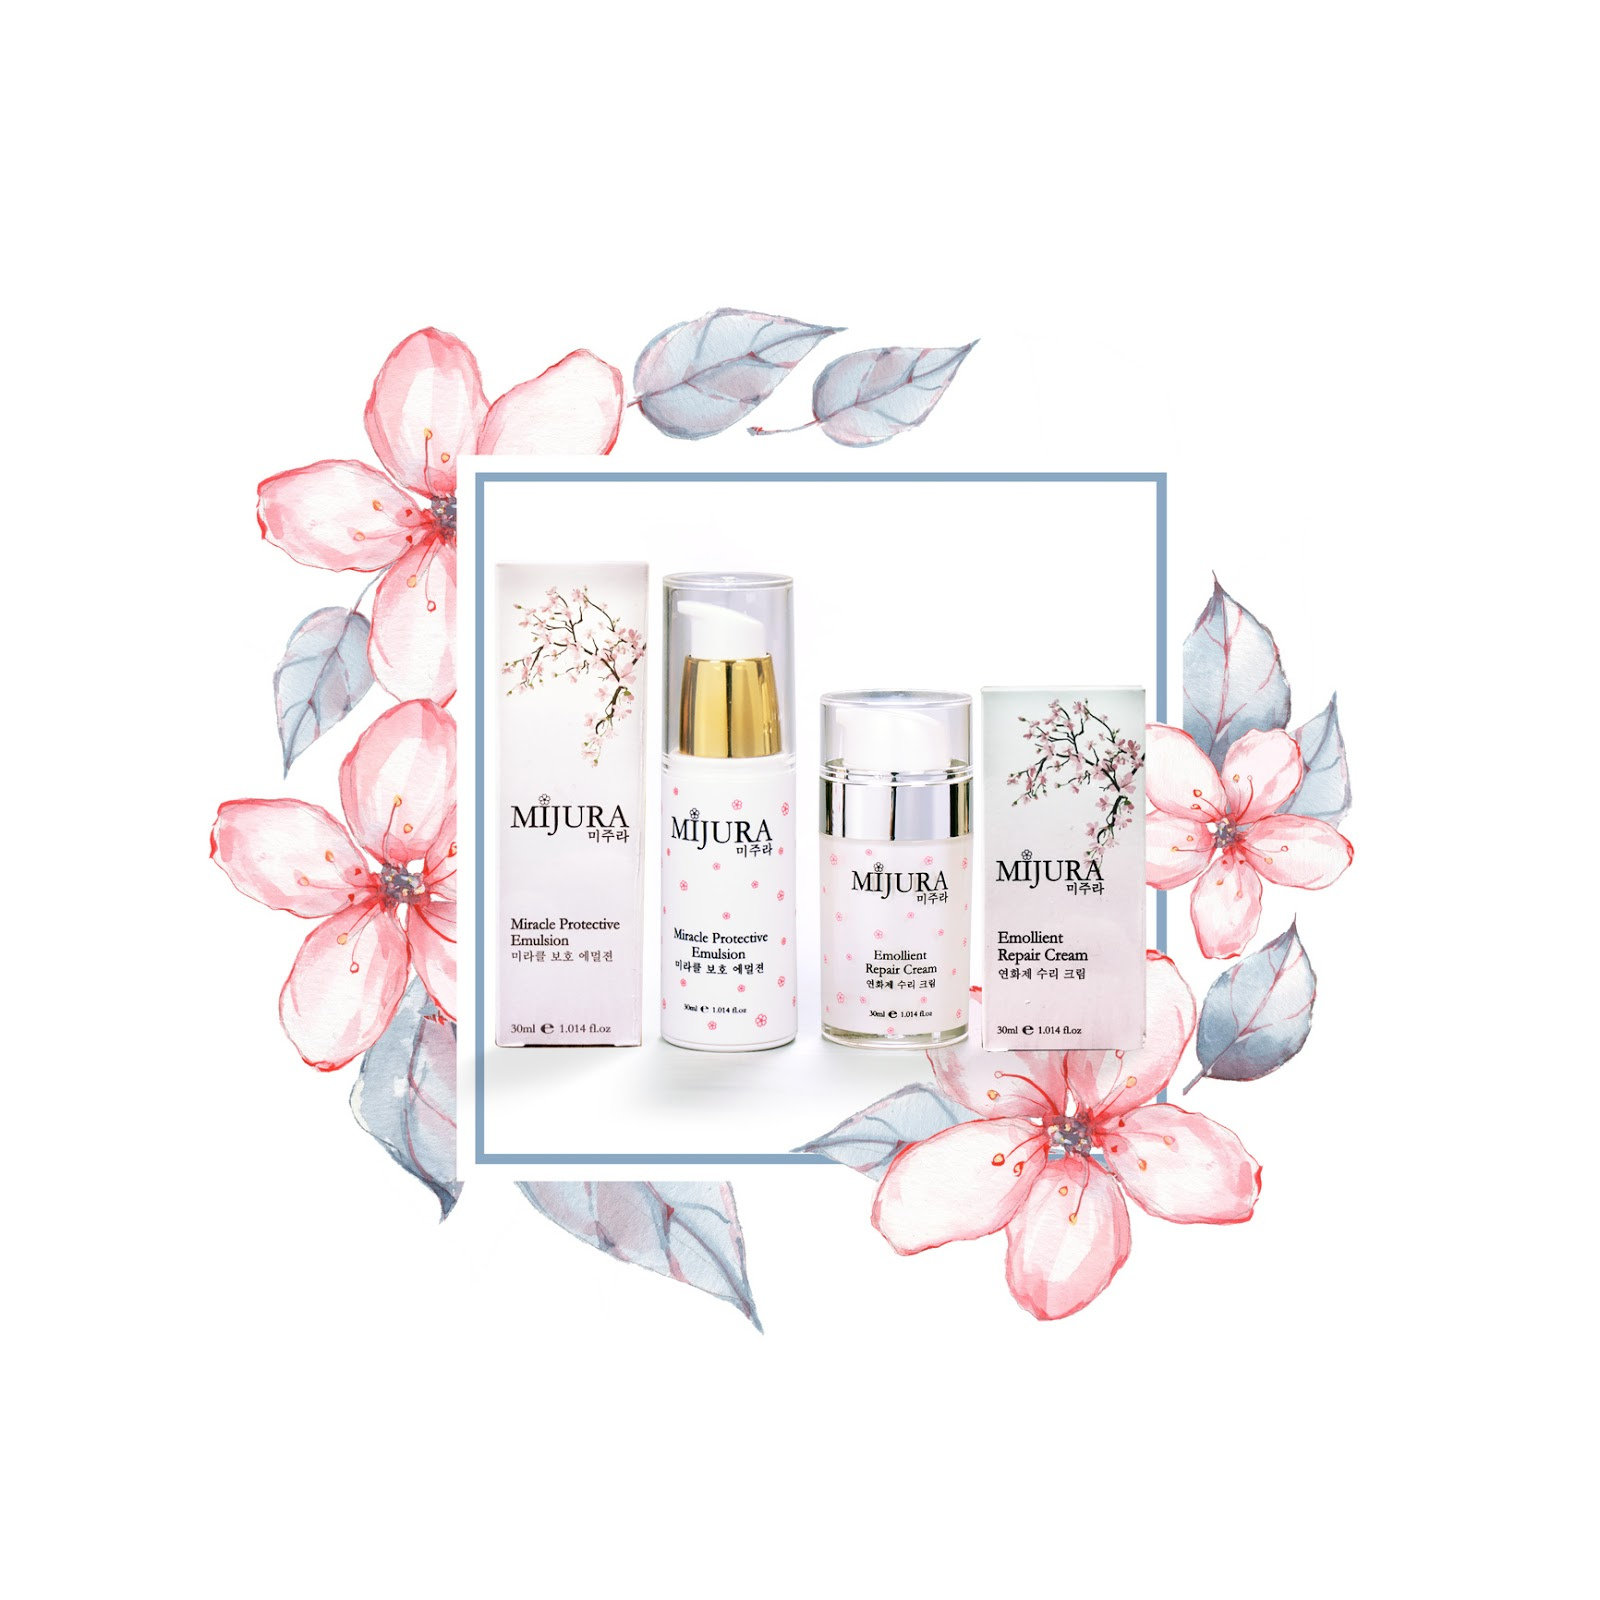 [Beauty Review] Mijura Korea Skincare Product 密舒佳